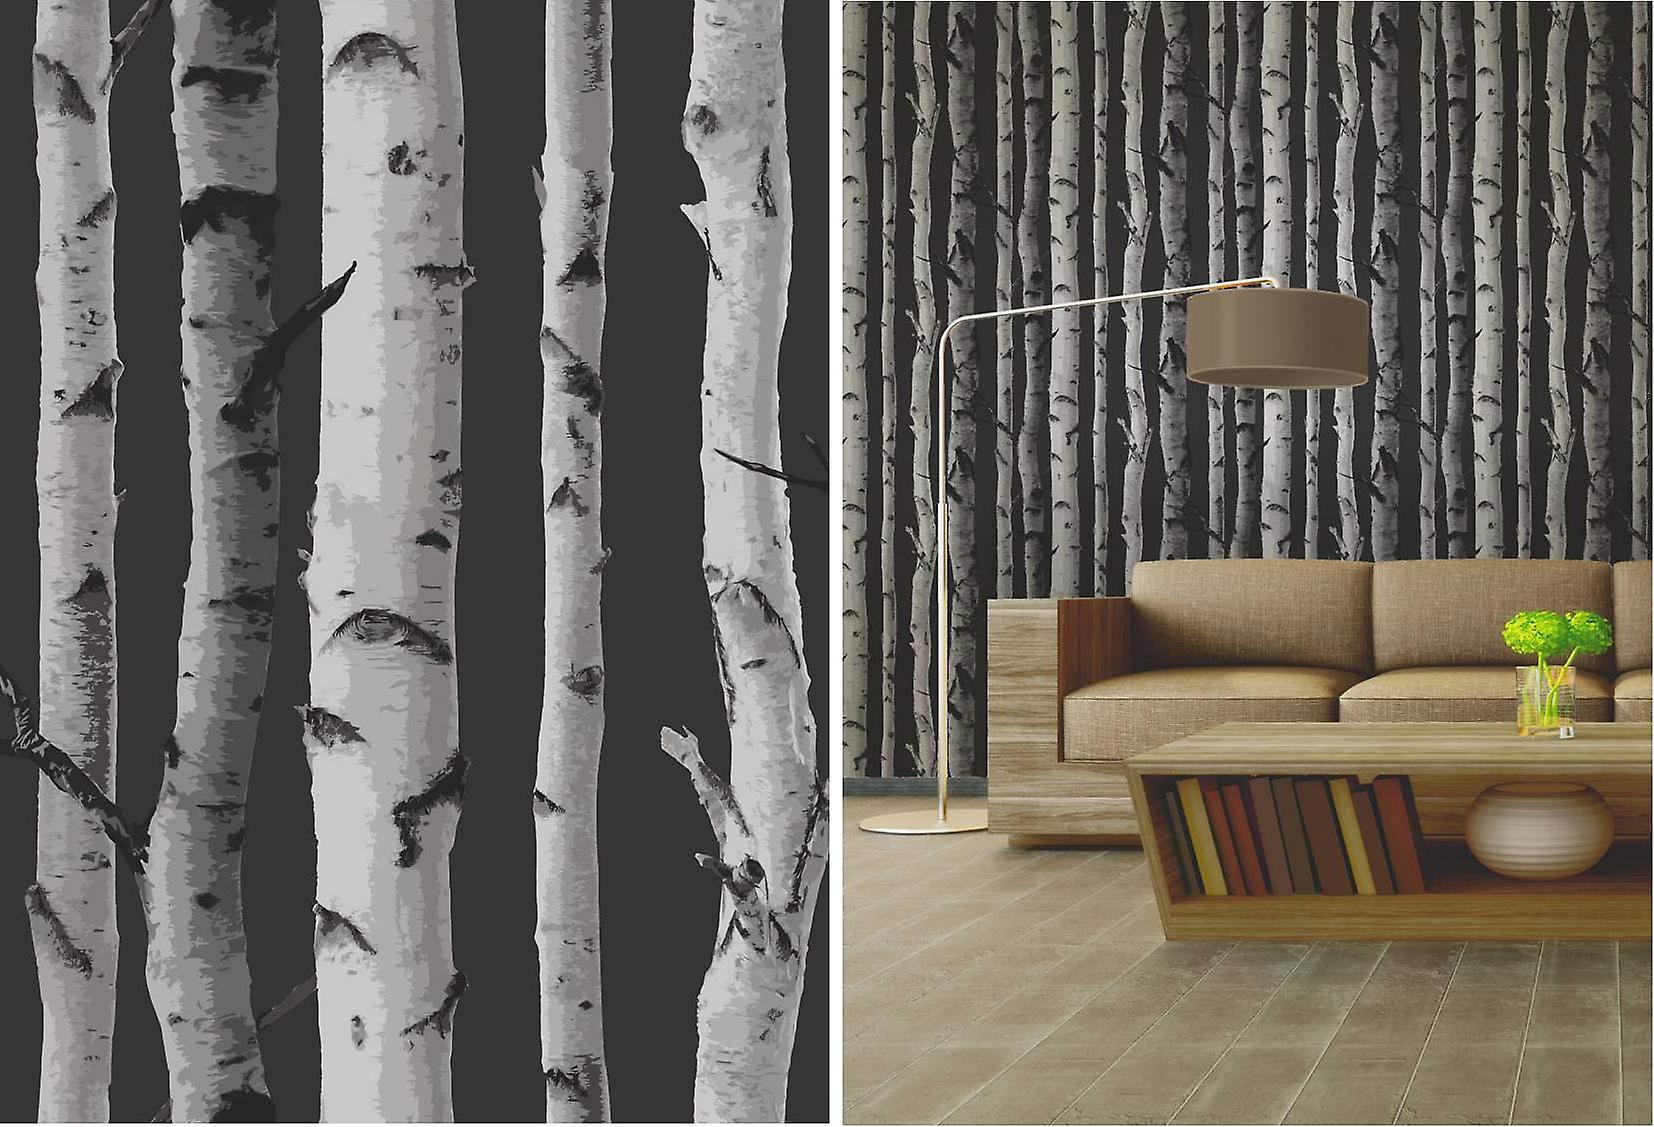 Fine Decor Charcoal Grey Birch Trees Forest Themed Feature Wallpaper